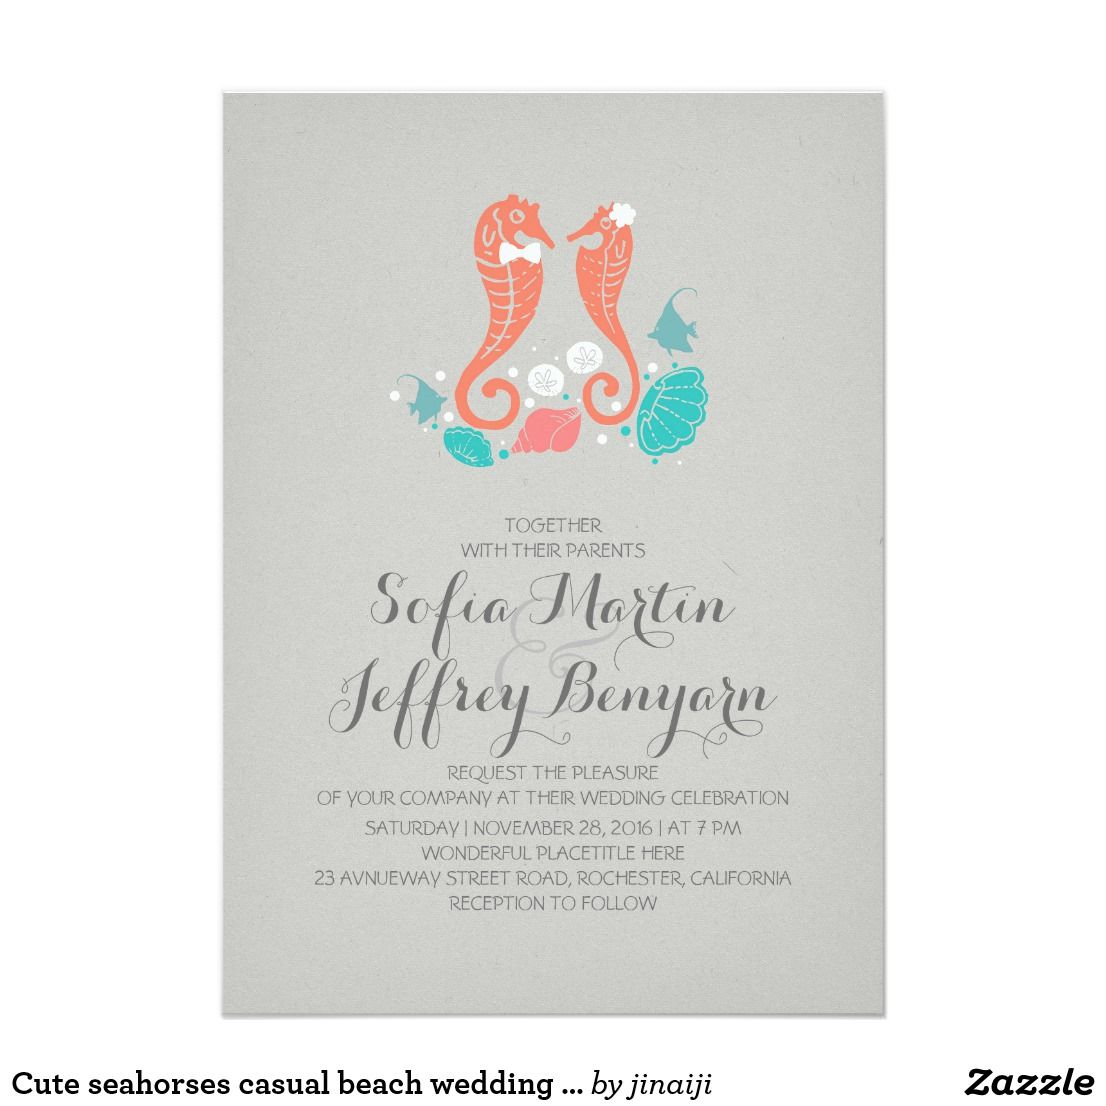 Cute seahorses casual beach wedding invitation | Pinterest | Groom ...